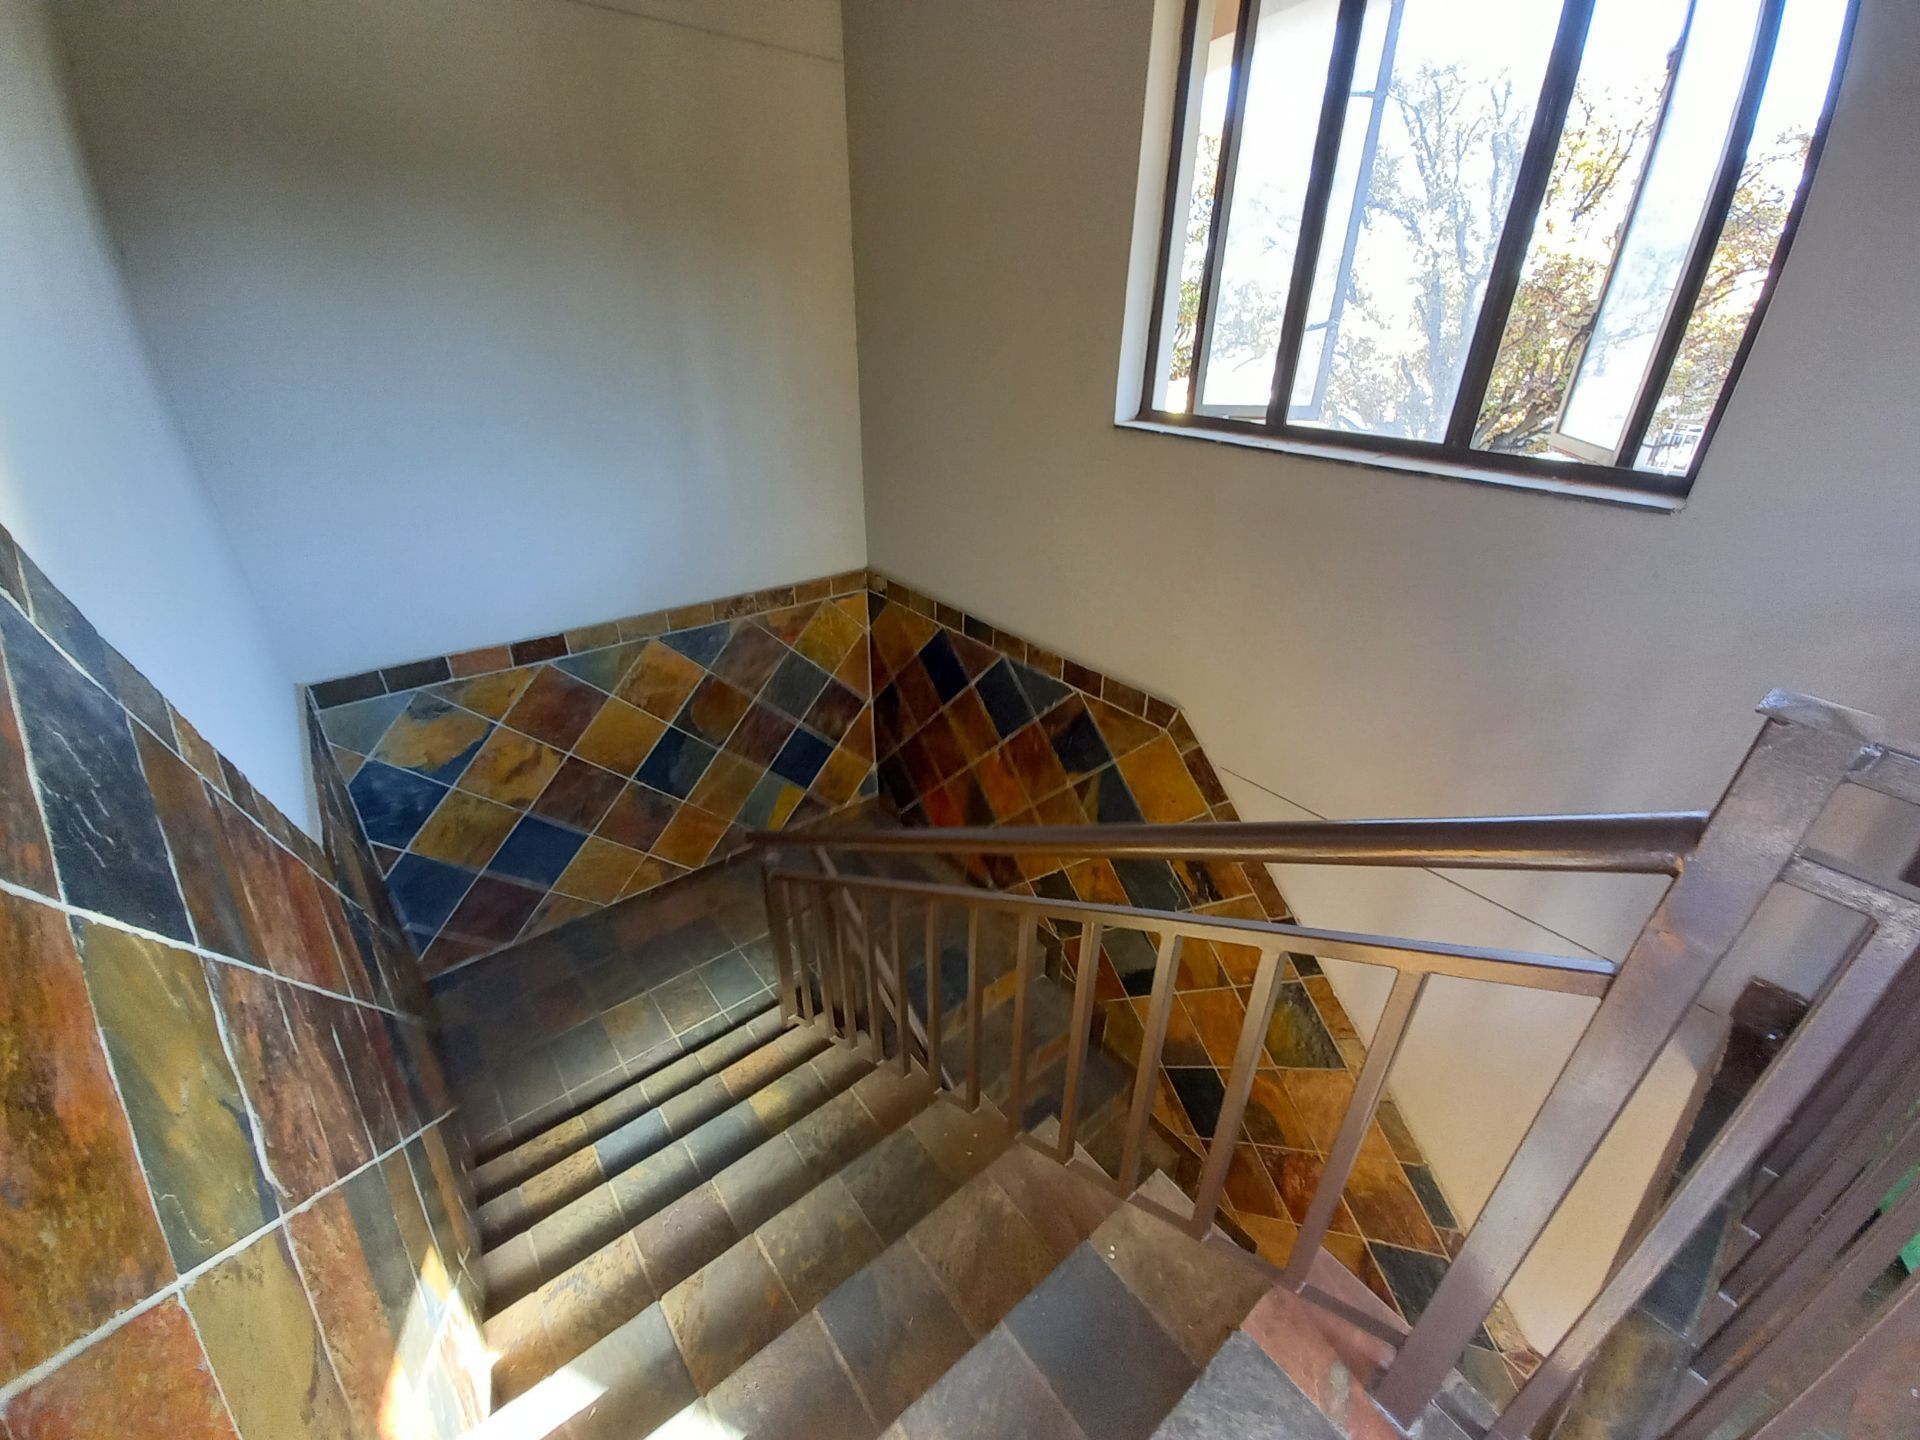 Apartment in Bult - stairs 2.jpg